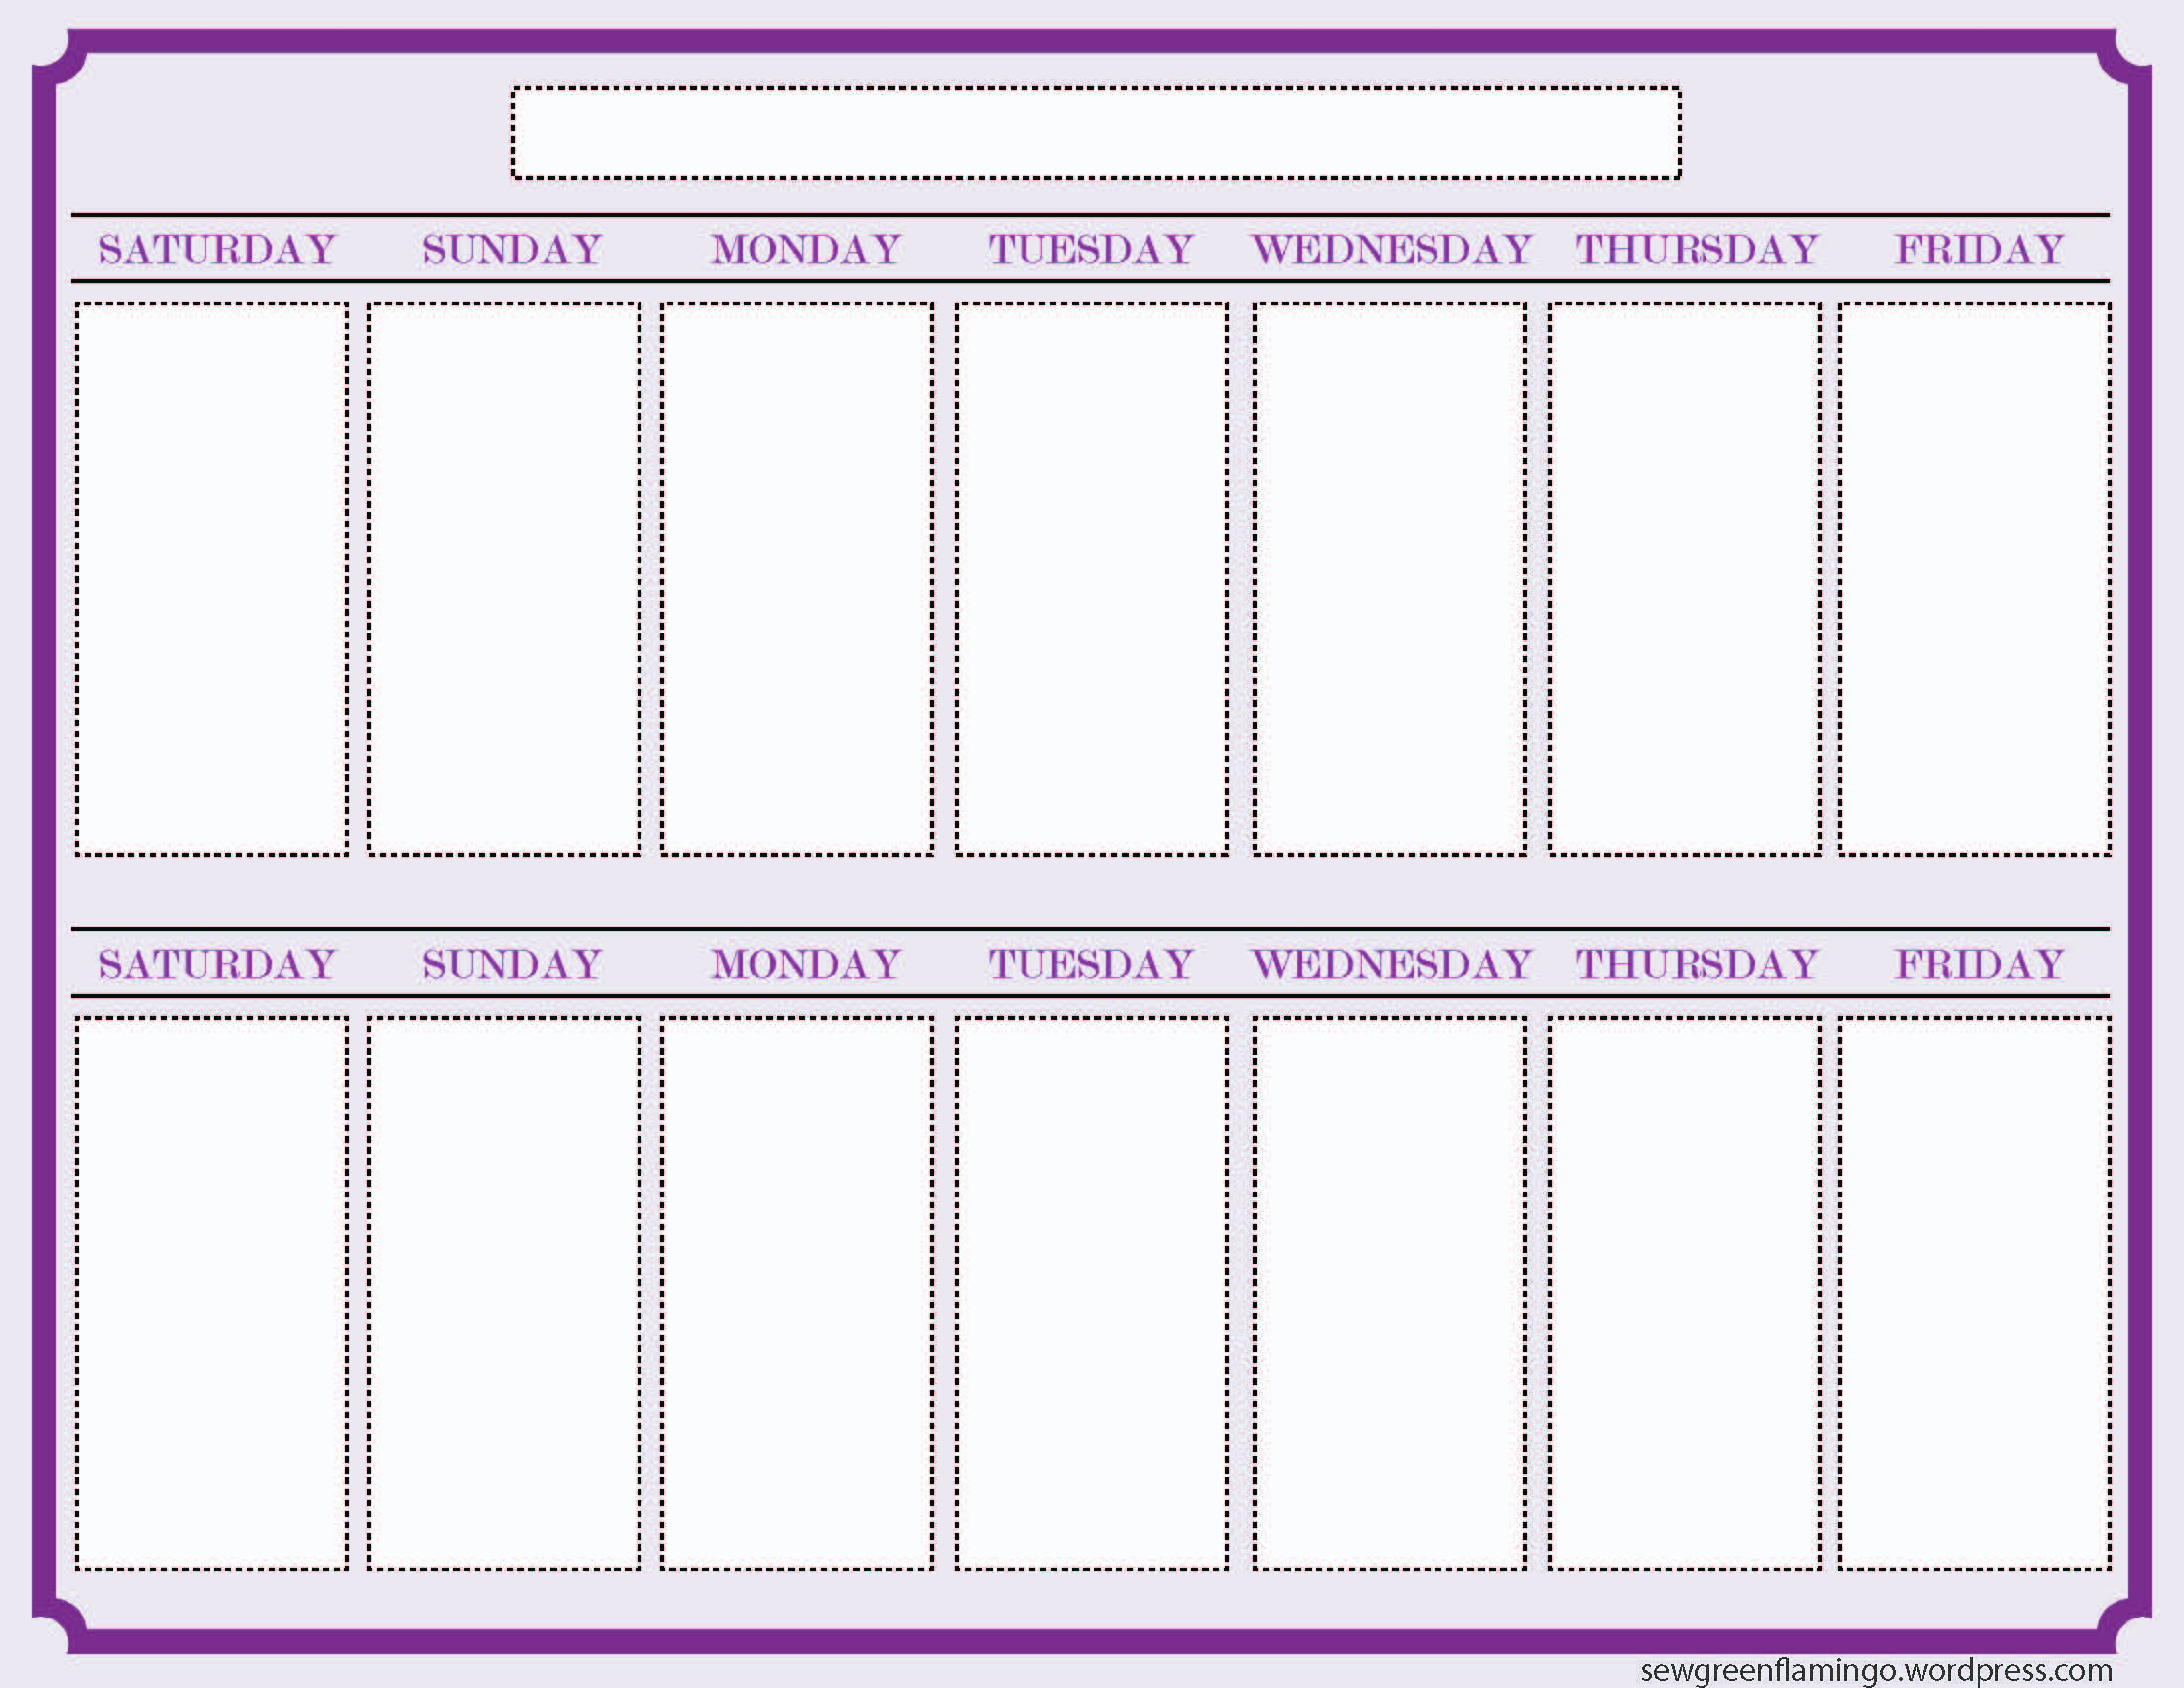 6 Images of Printable 2 Week Blank Calendar Template